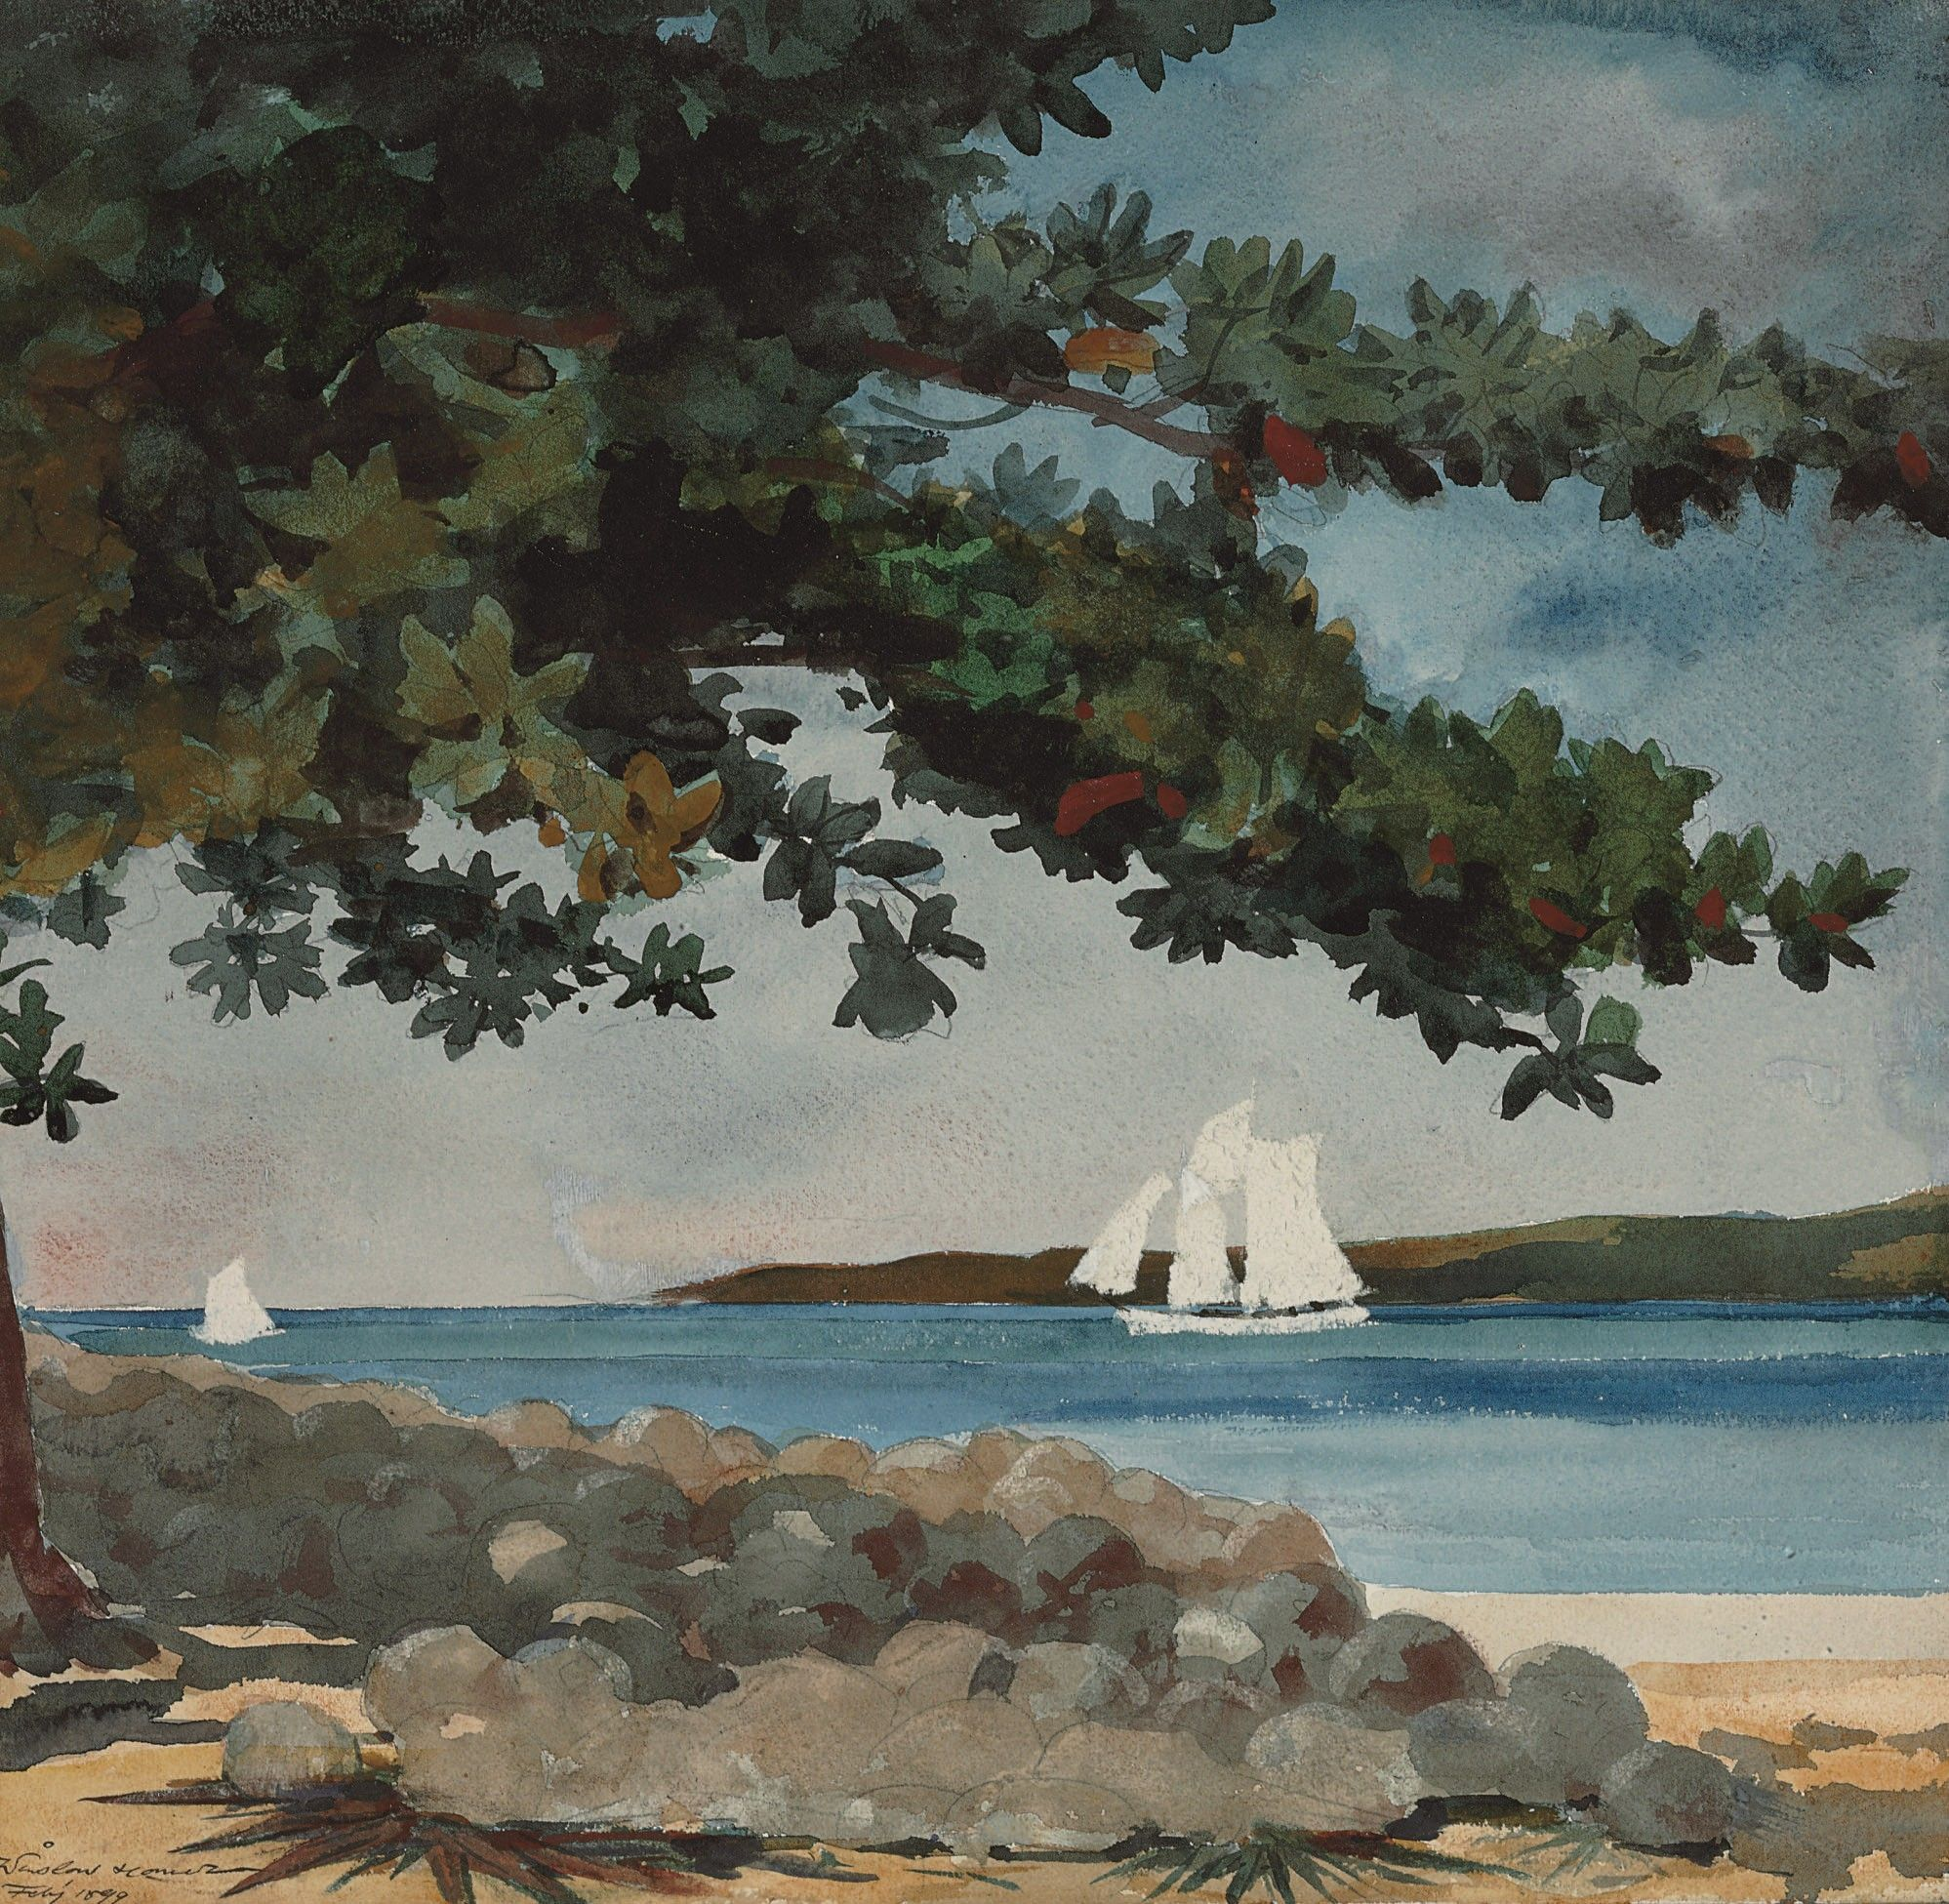 Watercolor art history - Nassau Water And Boat By Winslow Homer Watercolor Landscapewatercolor Artbeach